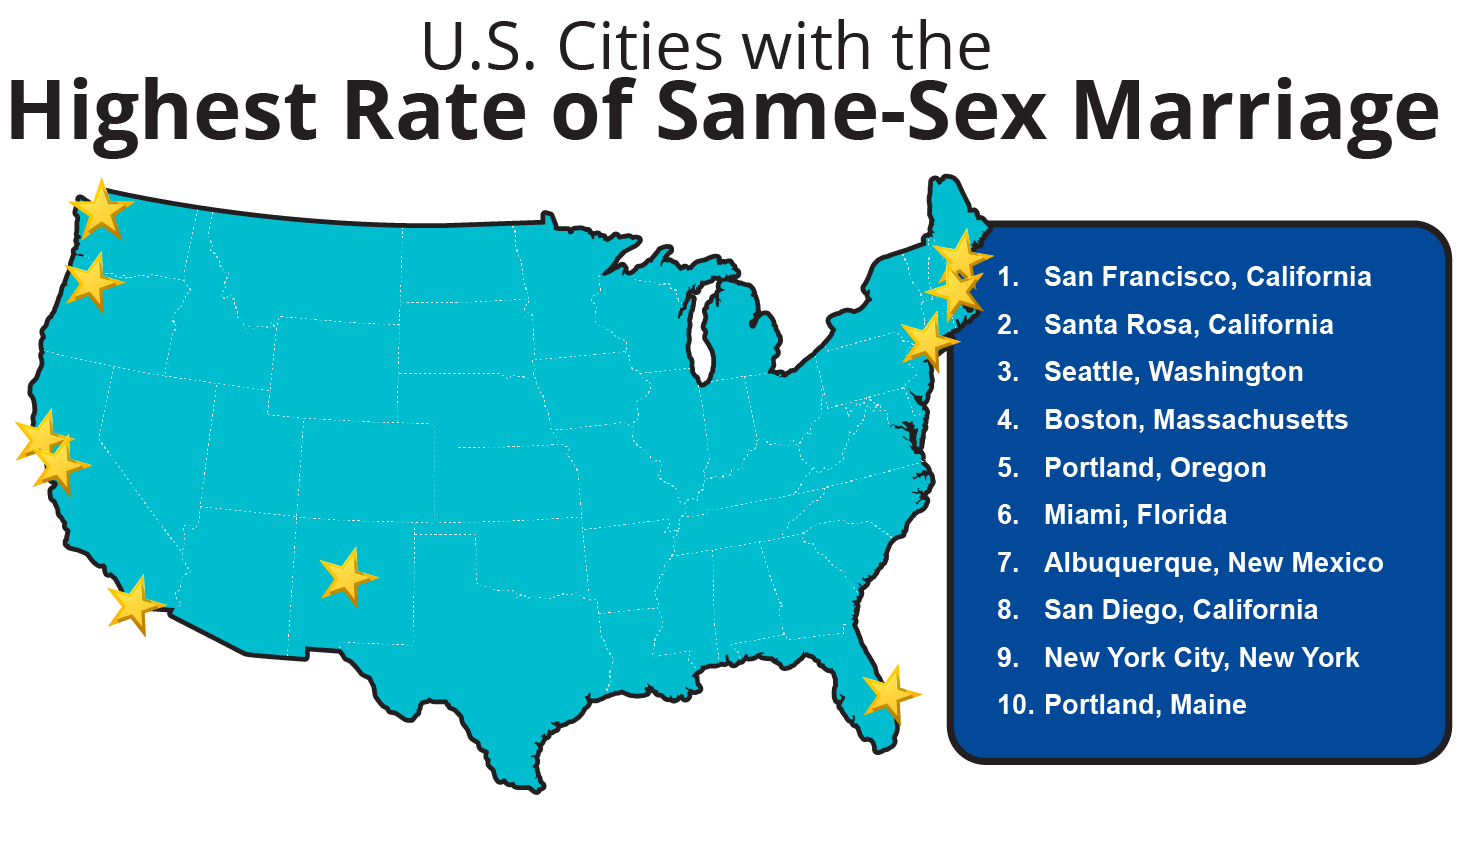 U.S. cities with the highest rate of same-sex marriage.